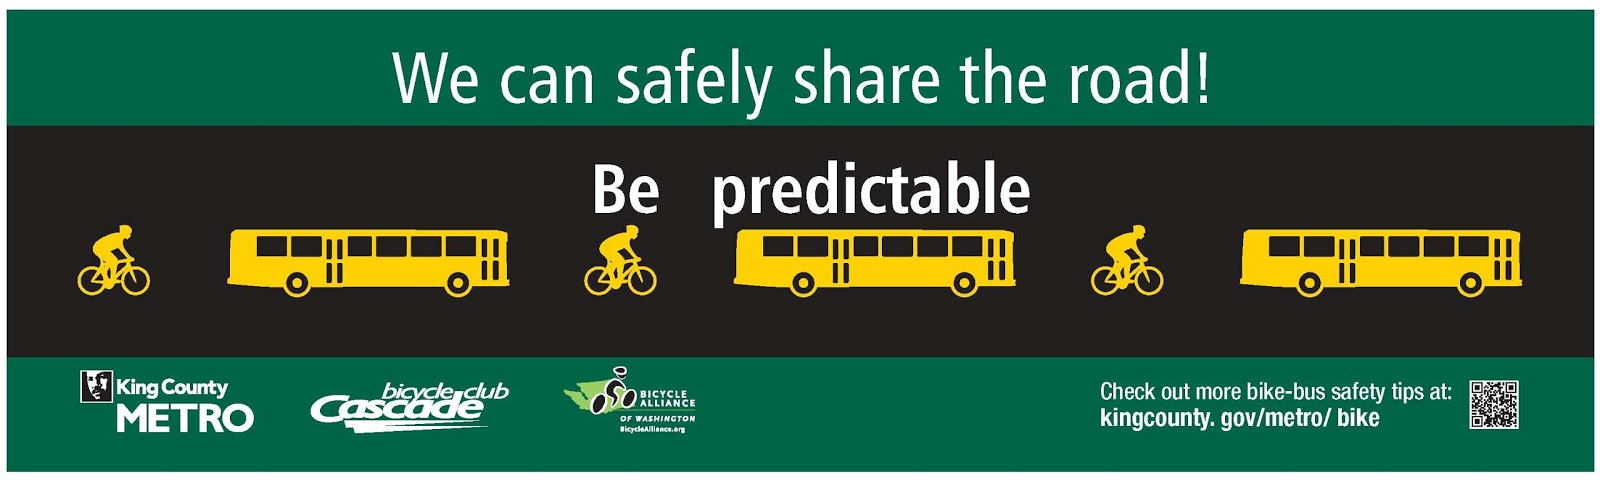 how to ride a bike safely on the road